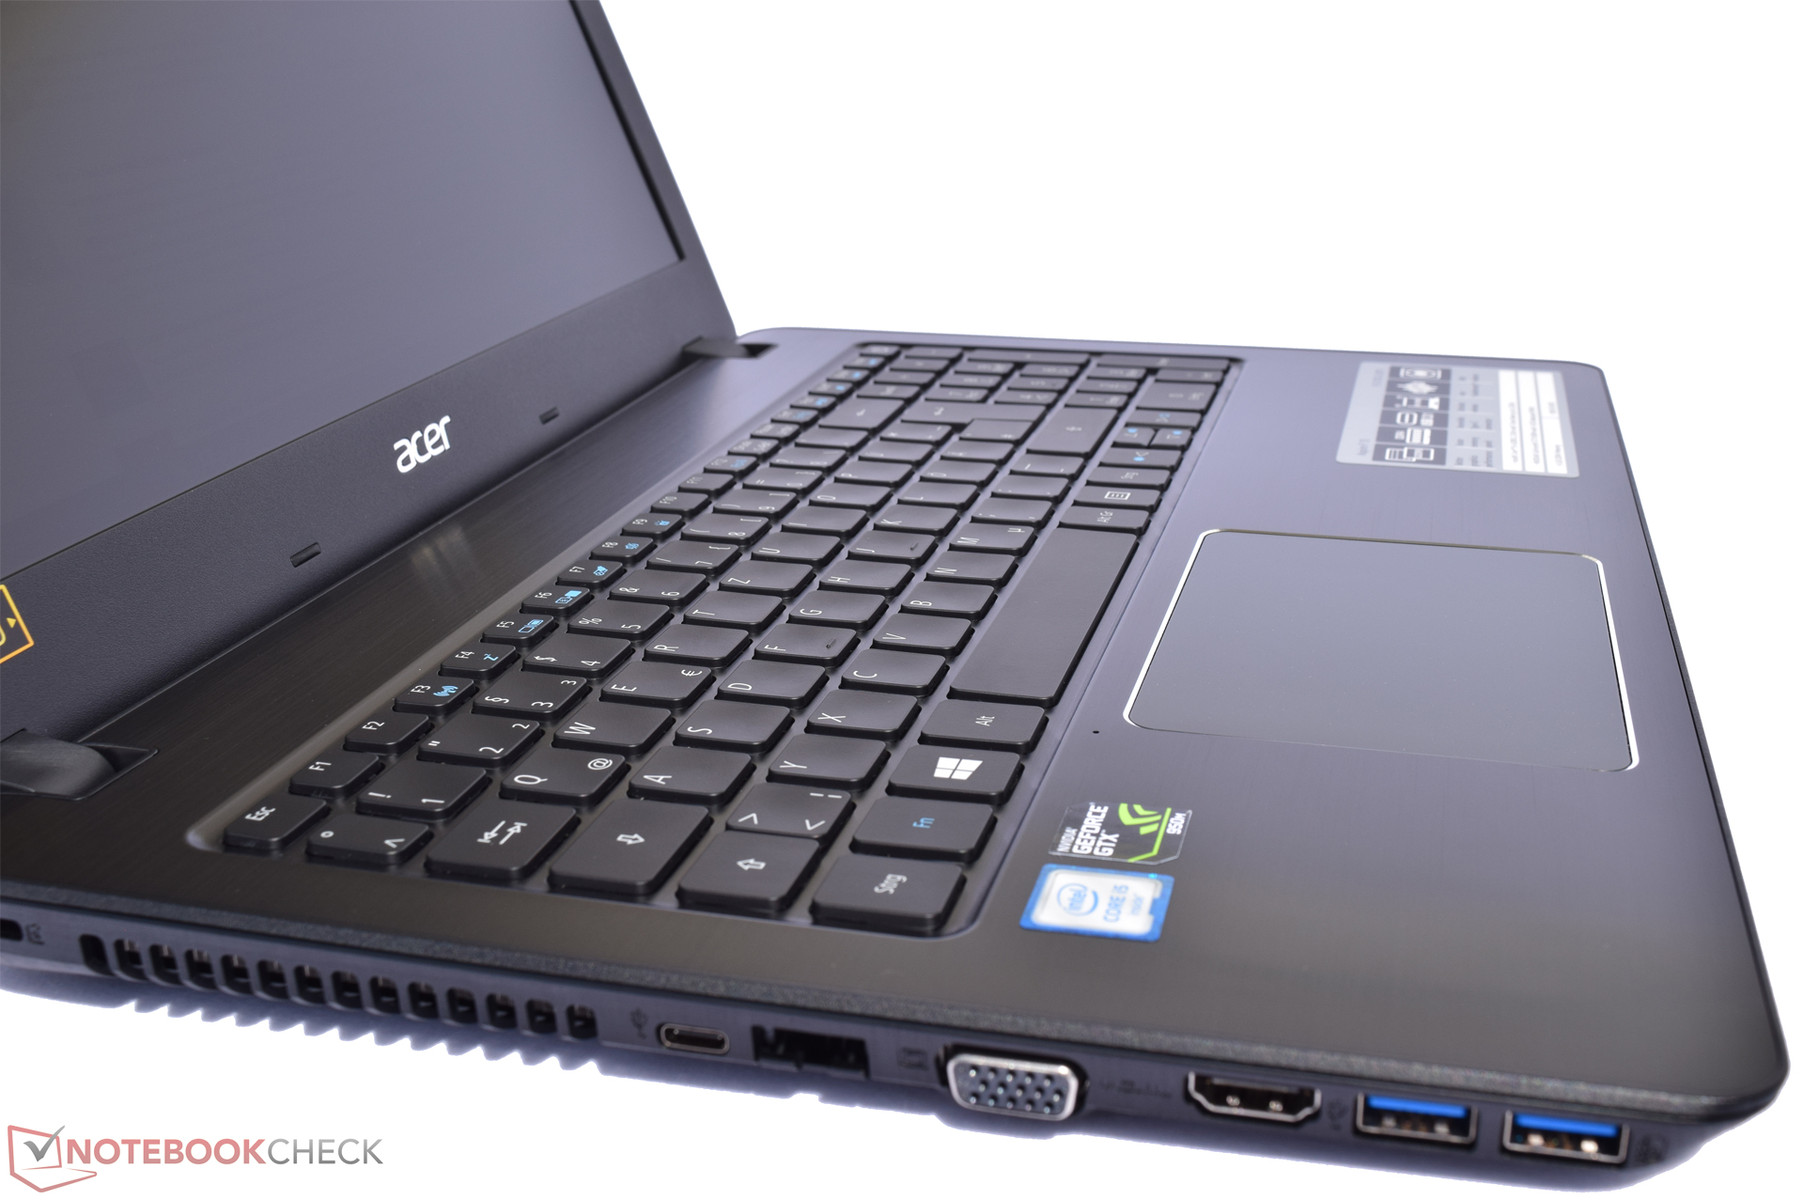 Acer Extensa 5230E Notebook QUALCOMM 3G Module Drivers for Windows Mac